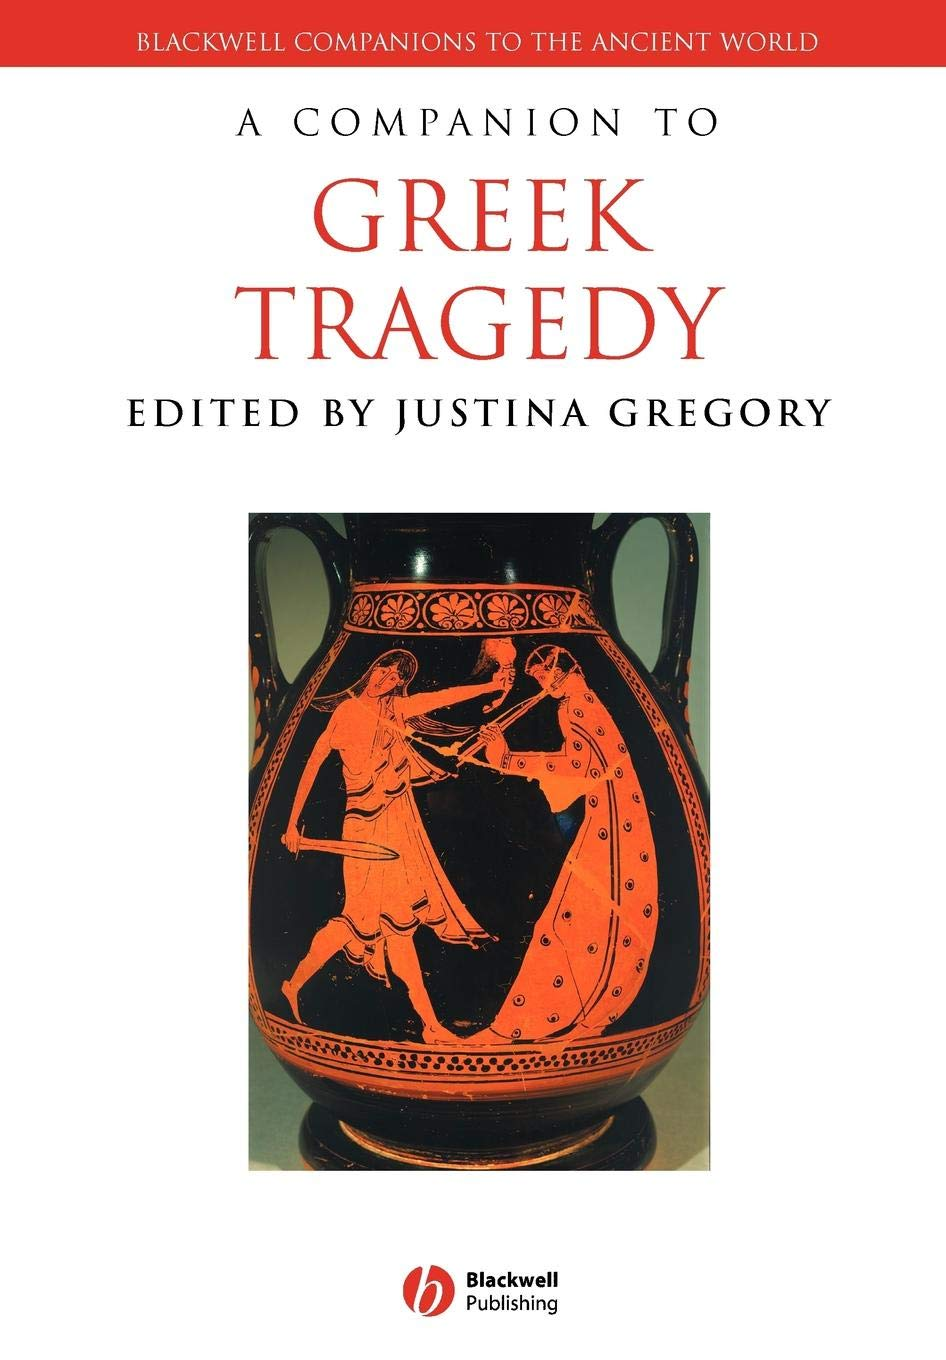 A Companion to Greek Tragedy (Blackwell Companions to the Ancient World)